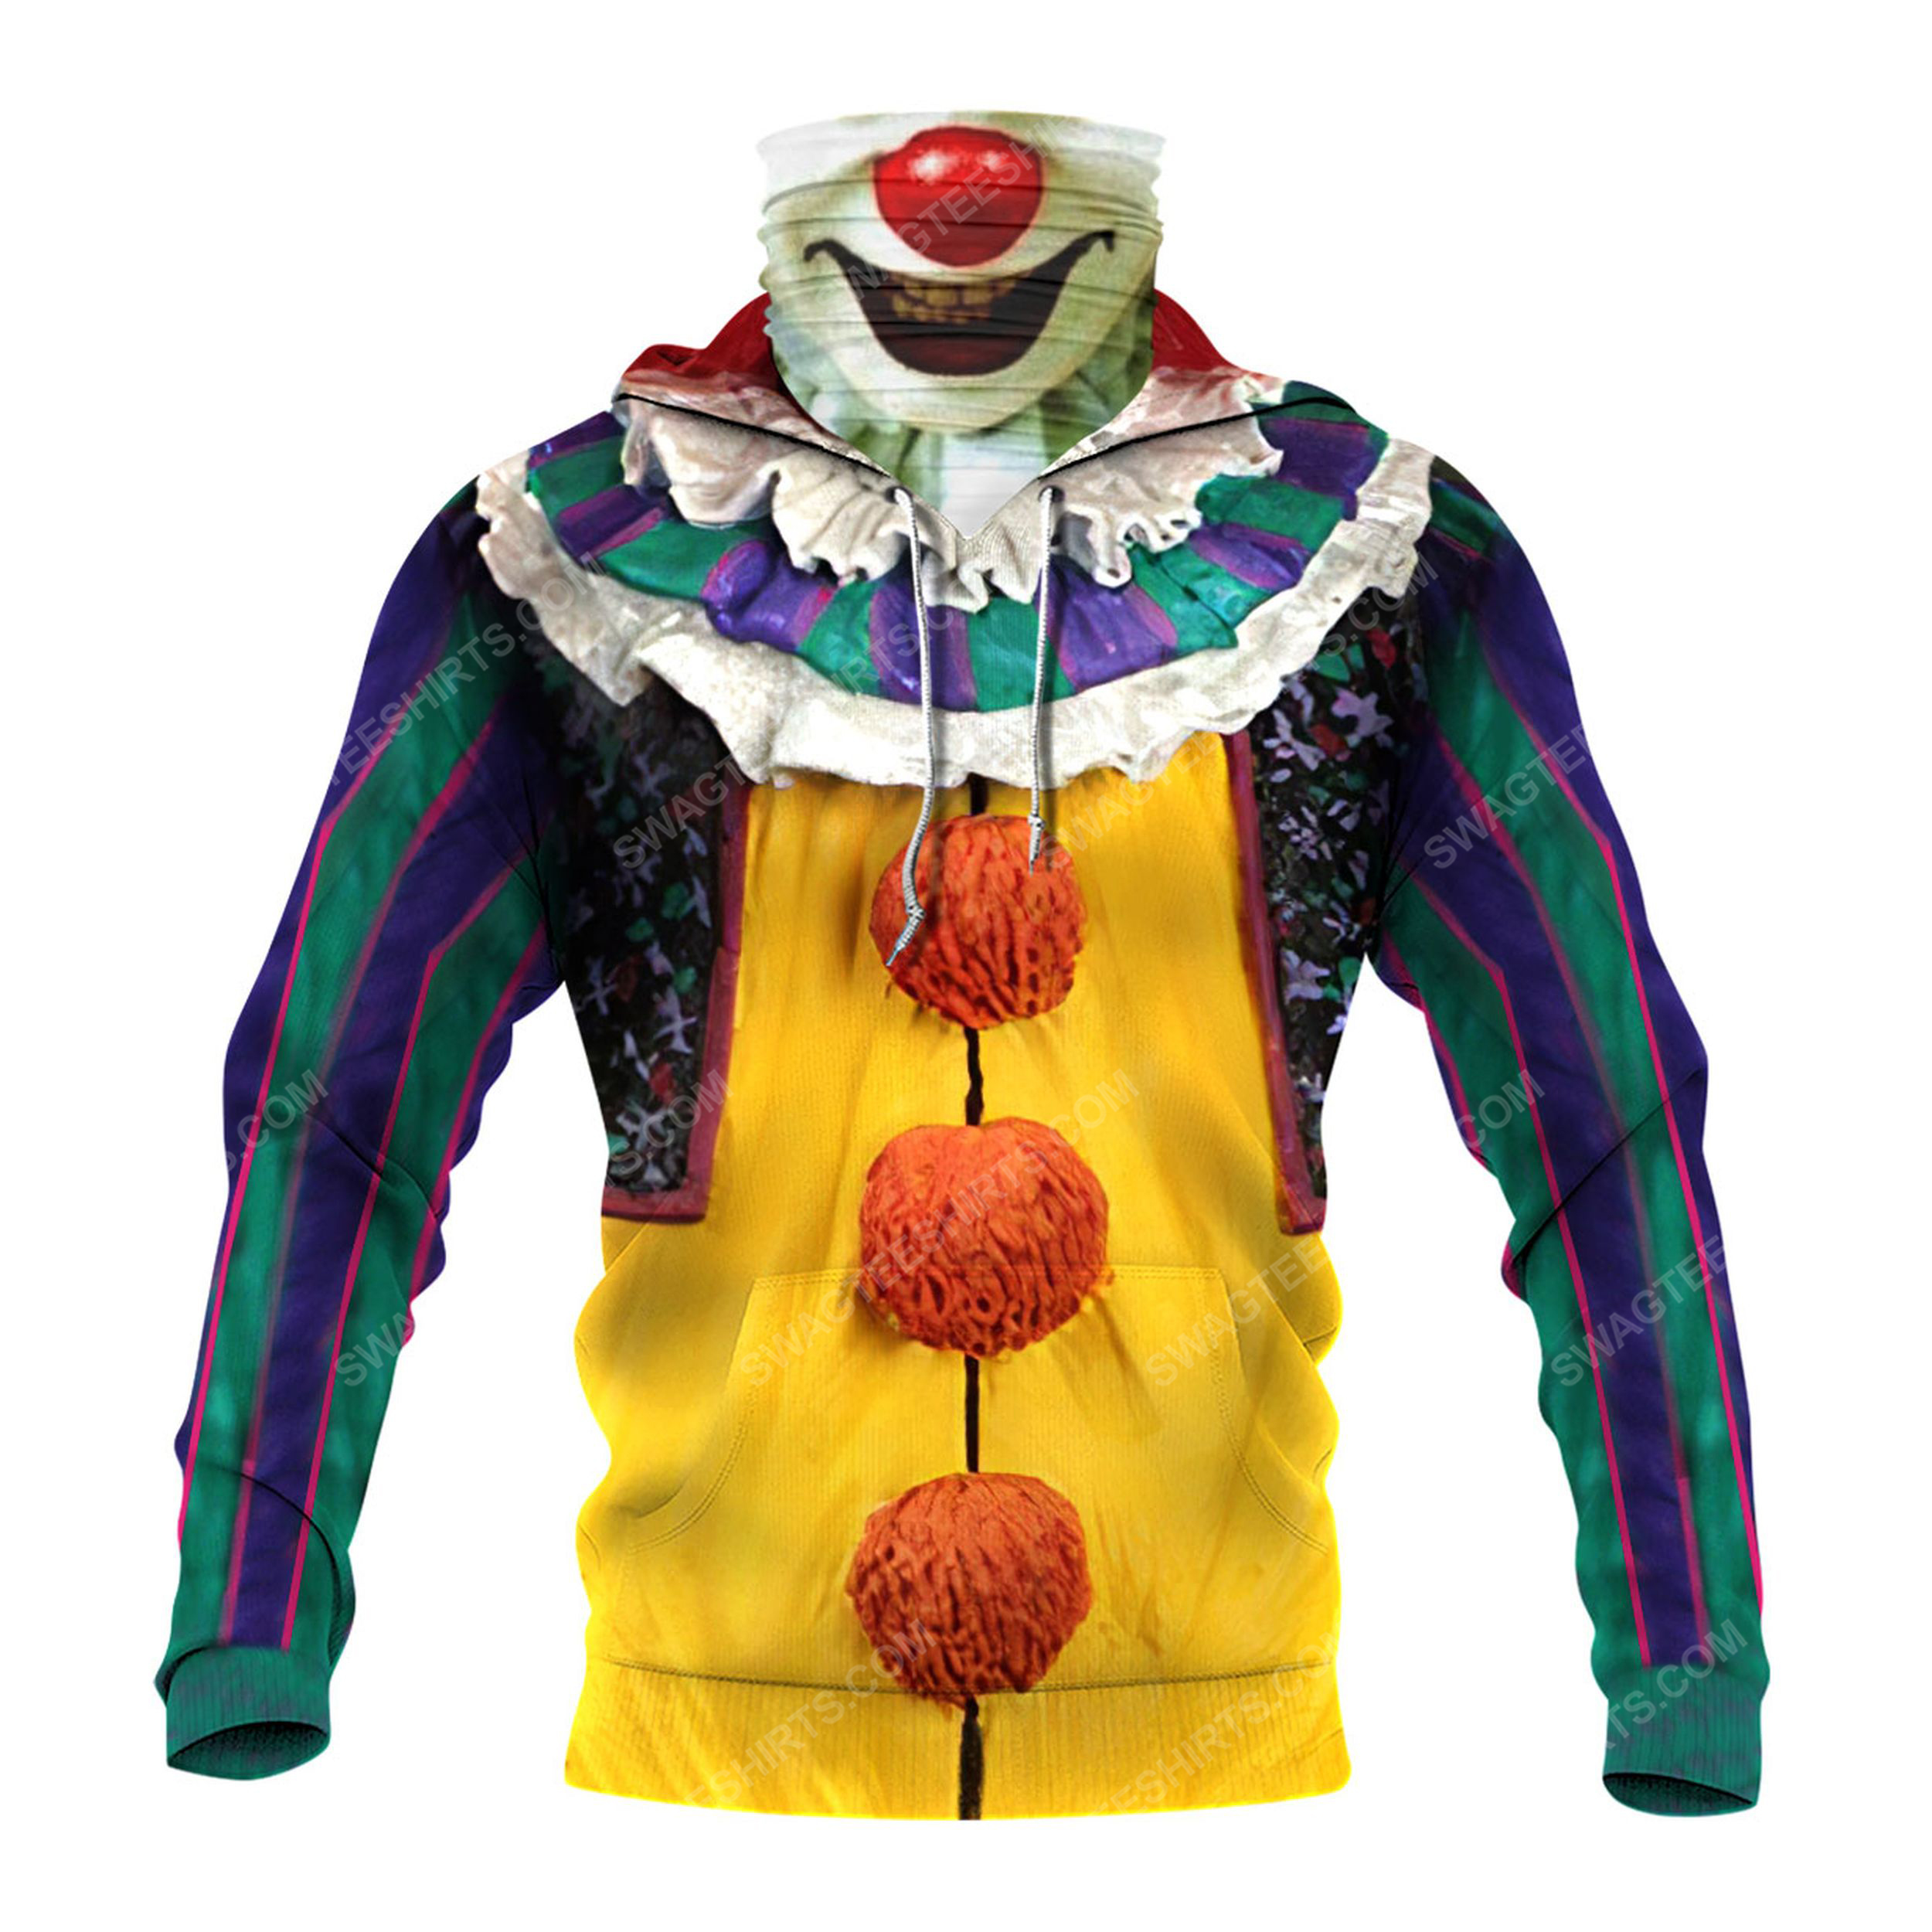 Pennywise the dancing clown for halloween full print mask hoodie 3(1)